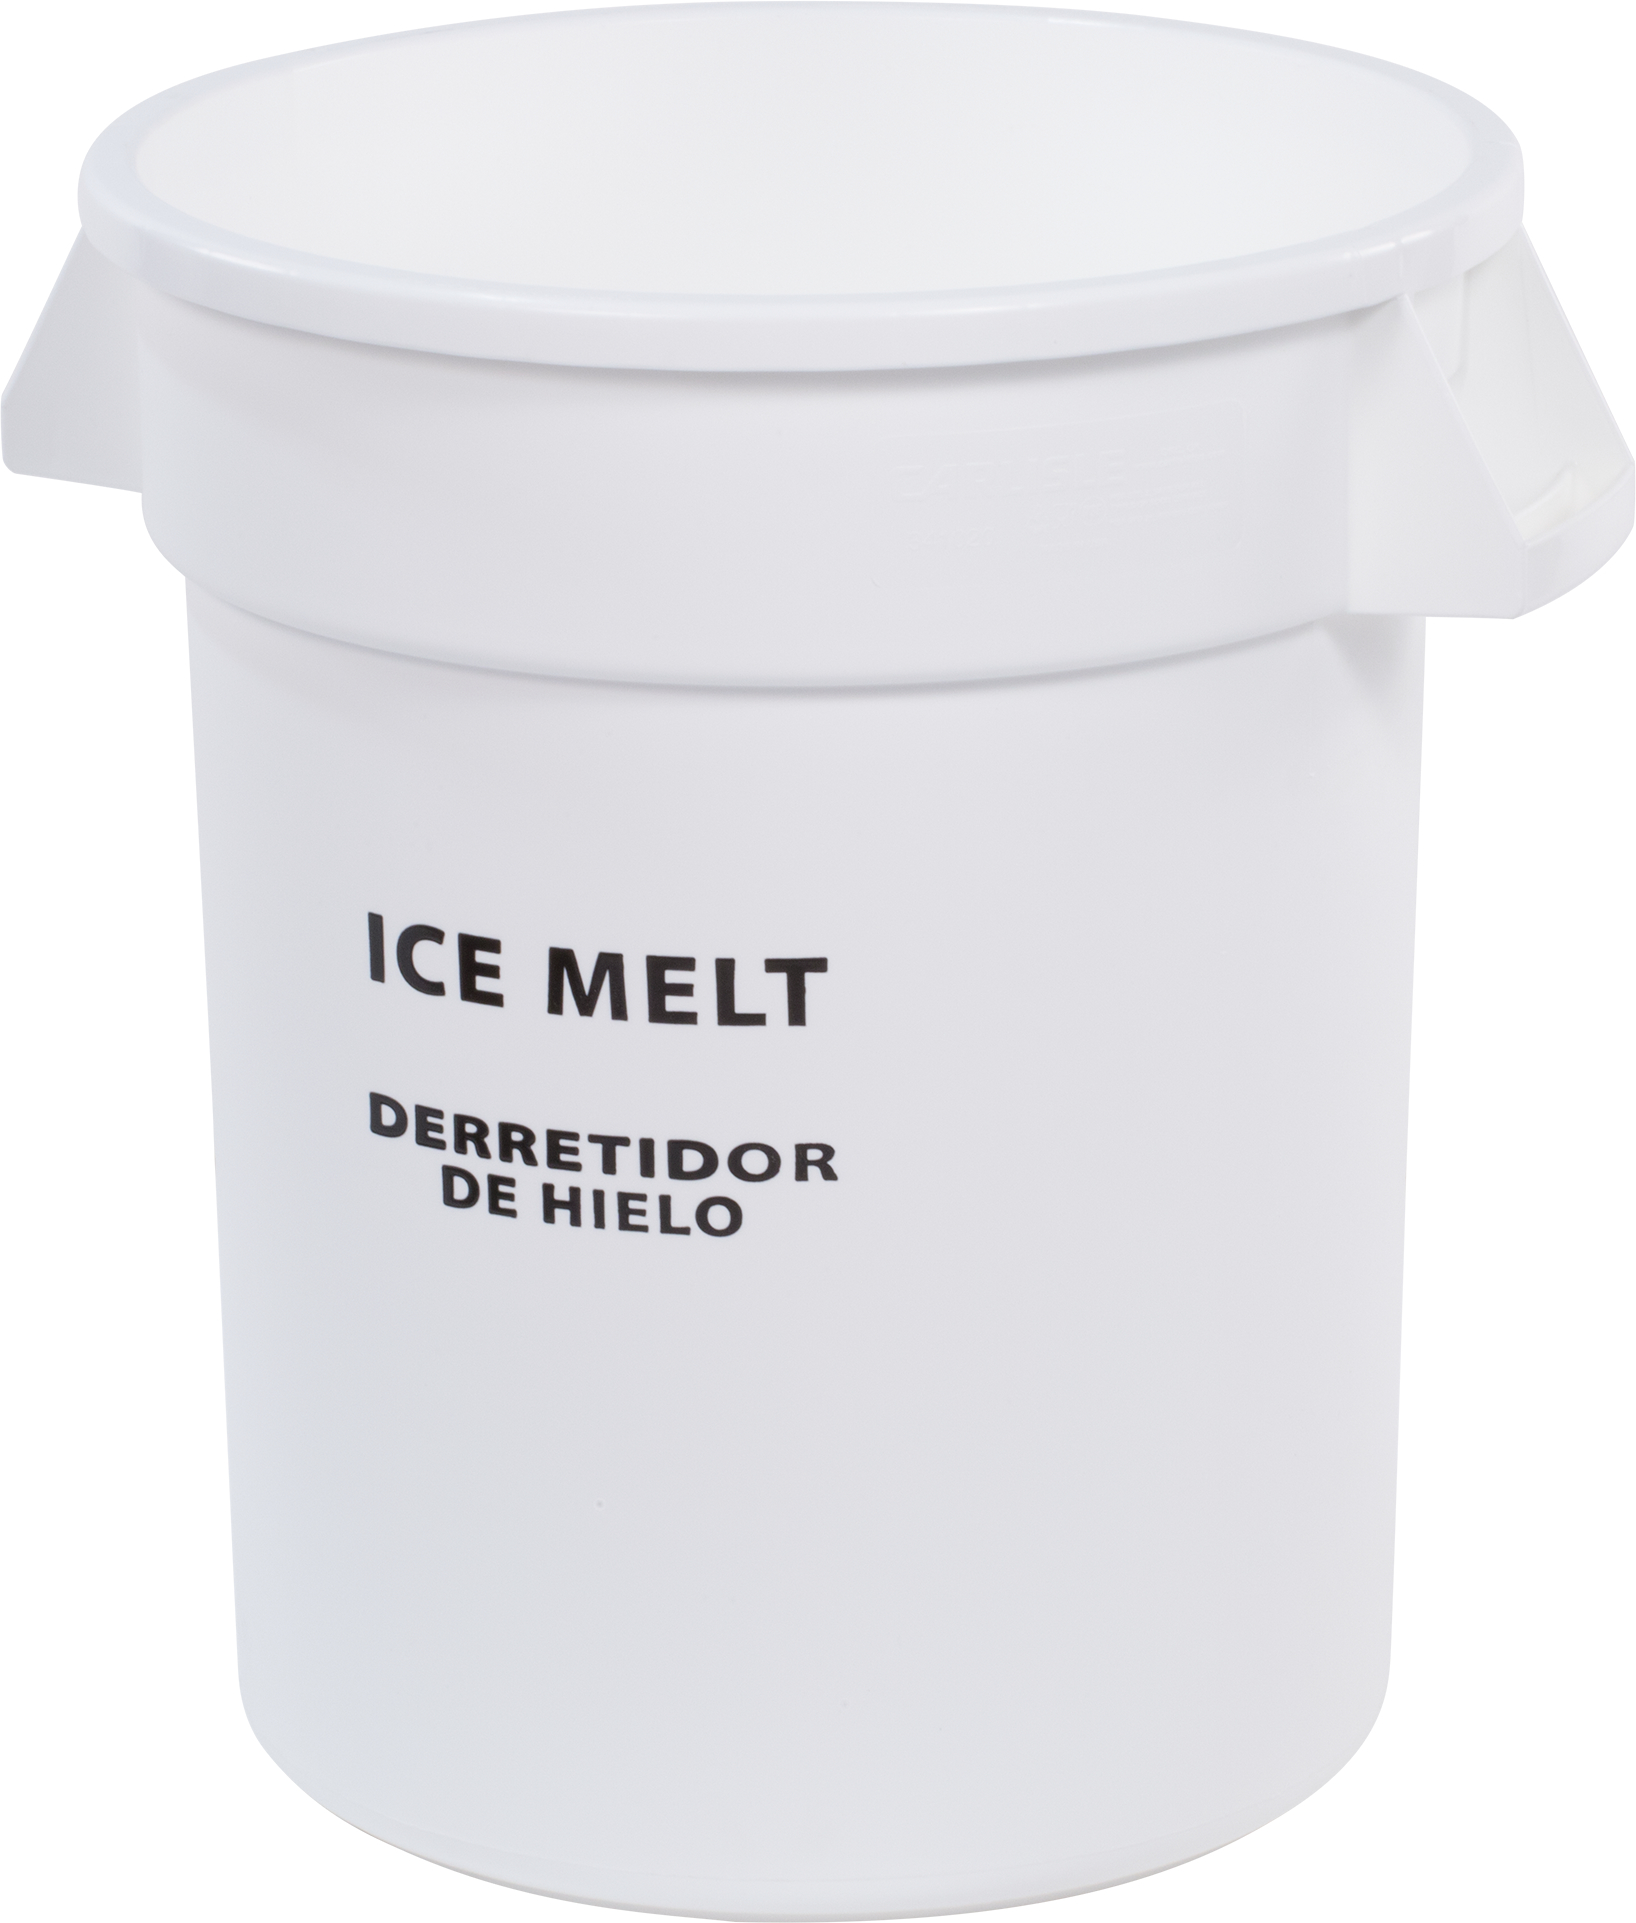 Bronco Round ICE MELT Container 10 Gallon - Ice Melt - White